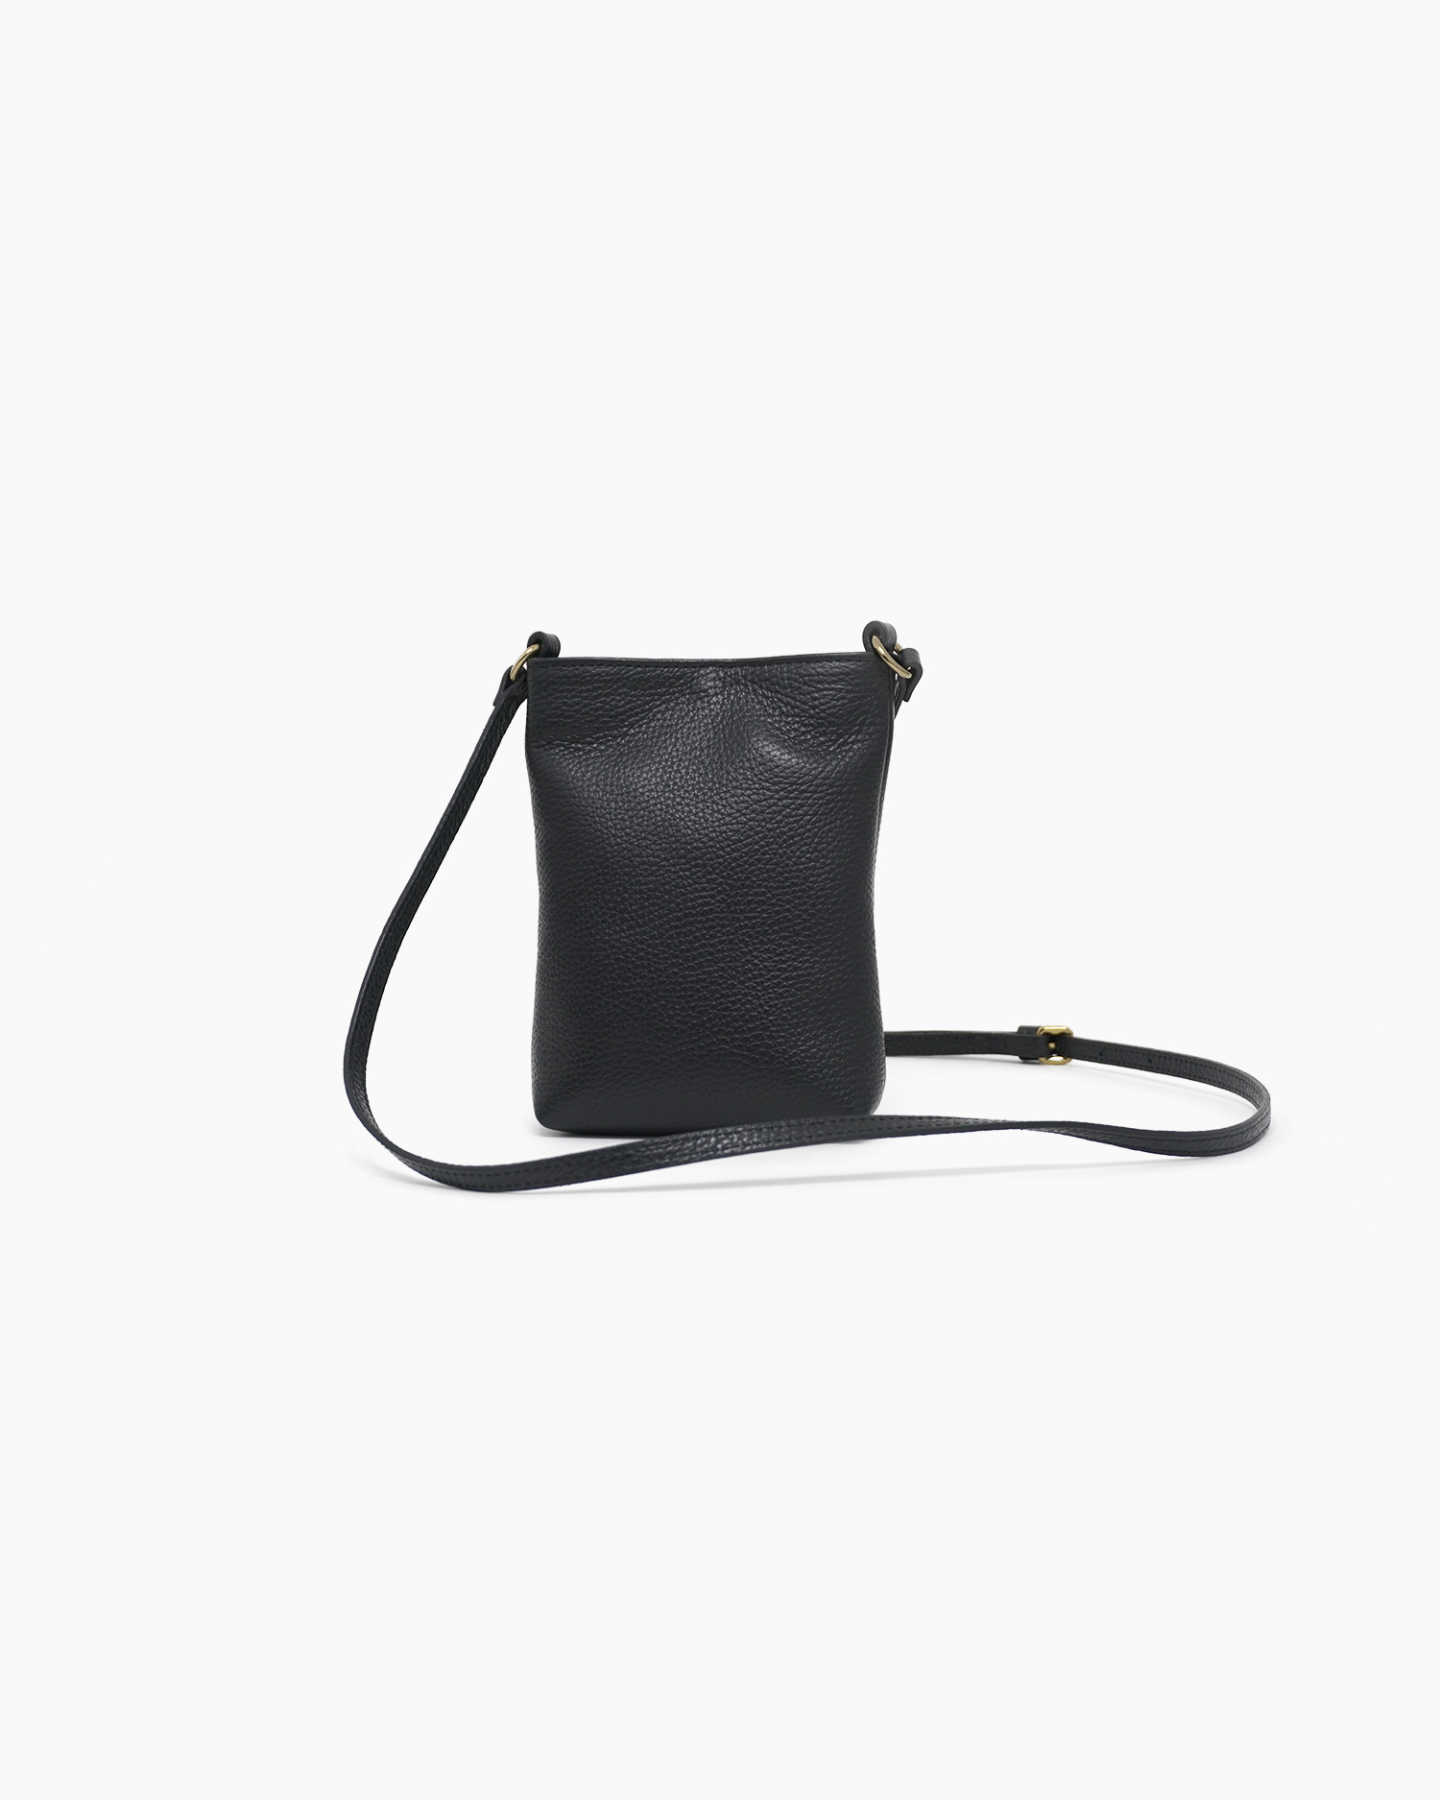 Italian Pebbled Leather Phone Crossbody - Black - 6 - Thumbnail